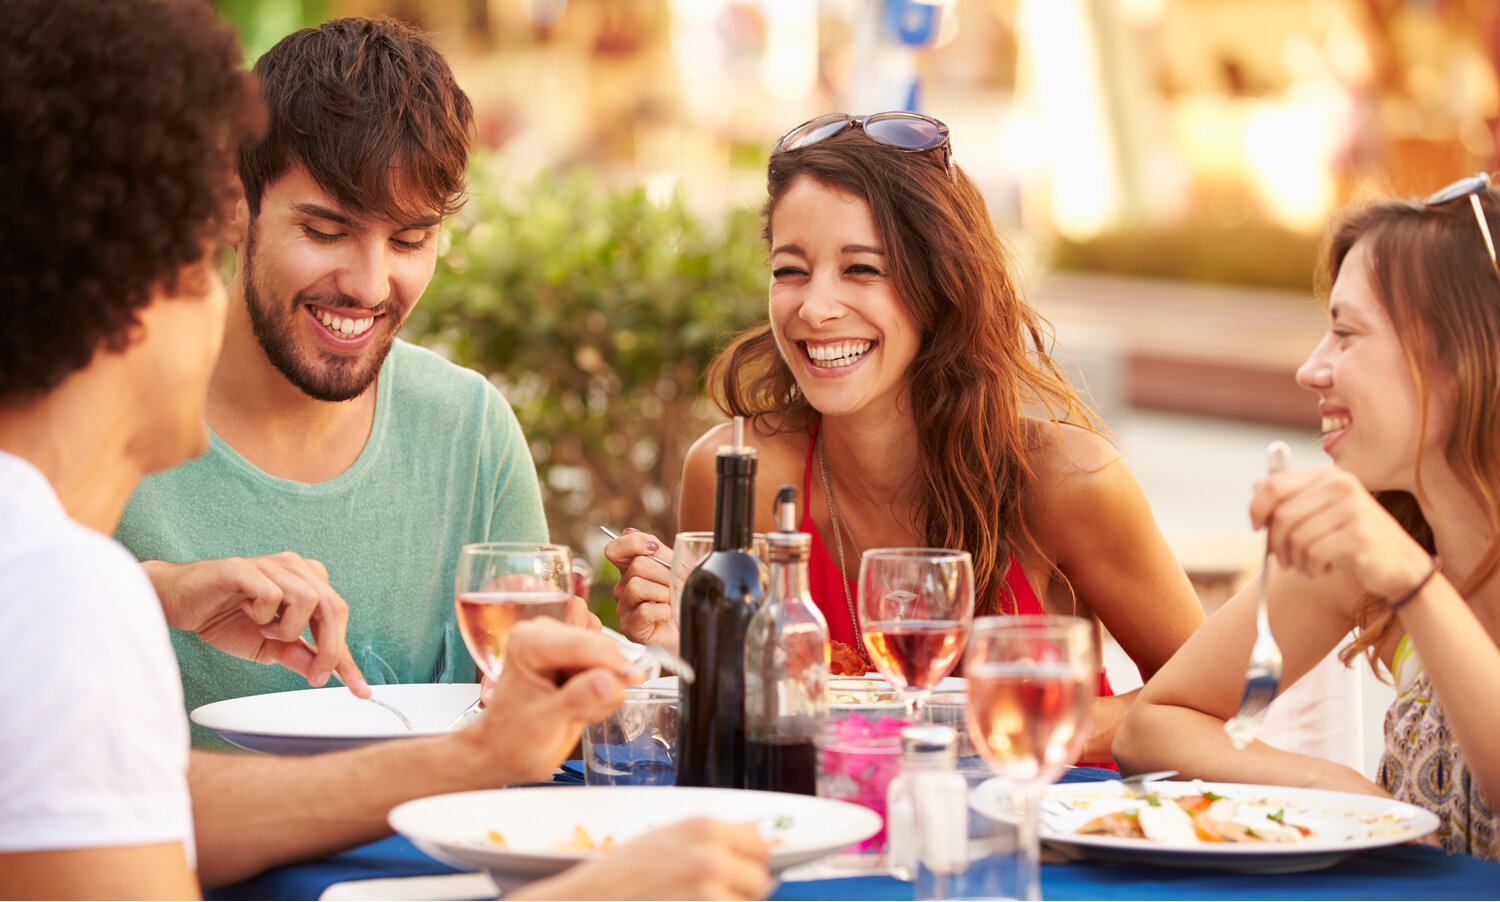 Group of four young friends laughing over lunch and glasses of rose wine